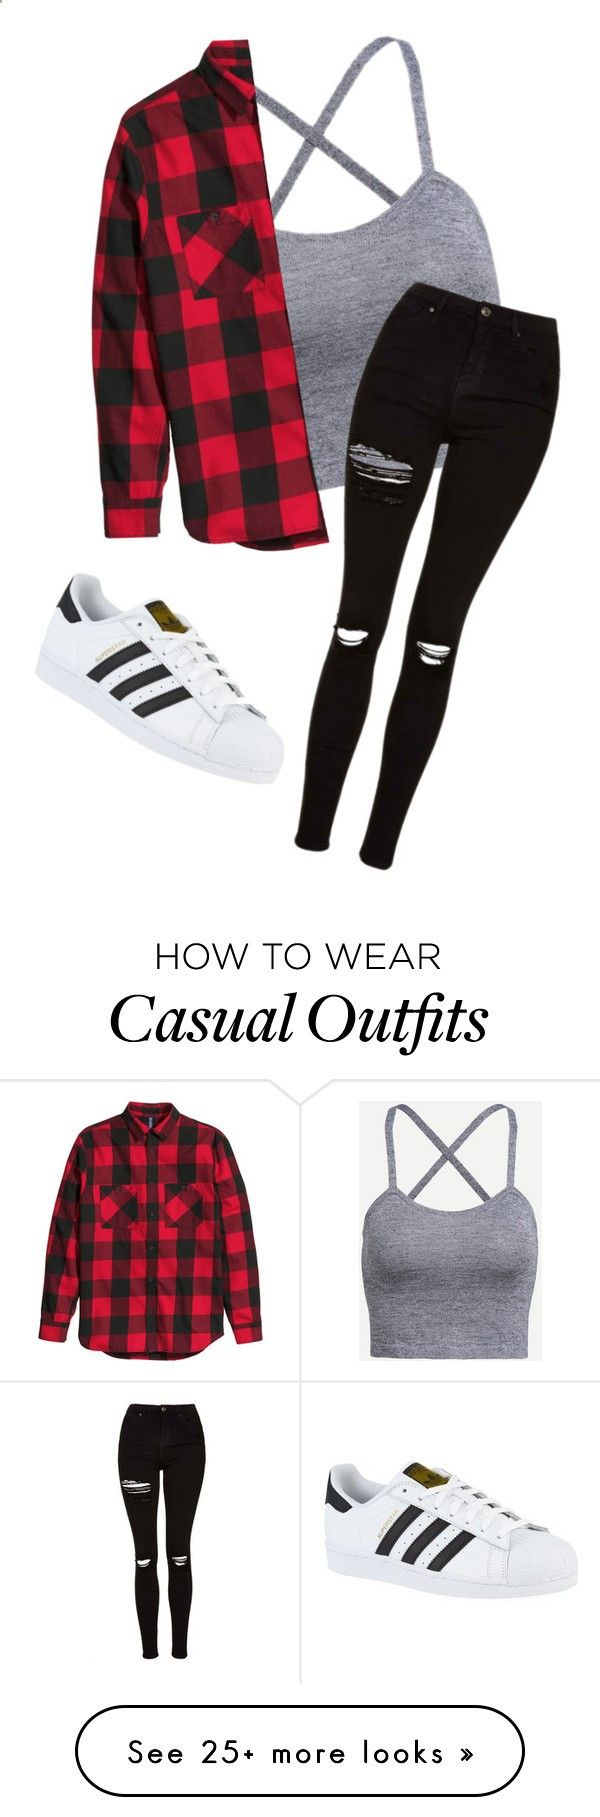 Casual by myhrer714 on Polyvore featuring Topshop and adidas Clothing, Shoes & J... 2